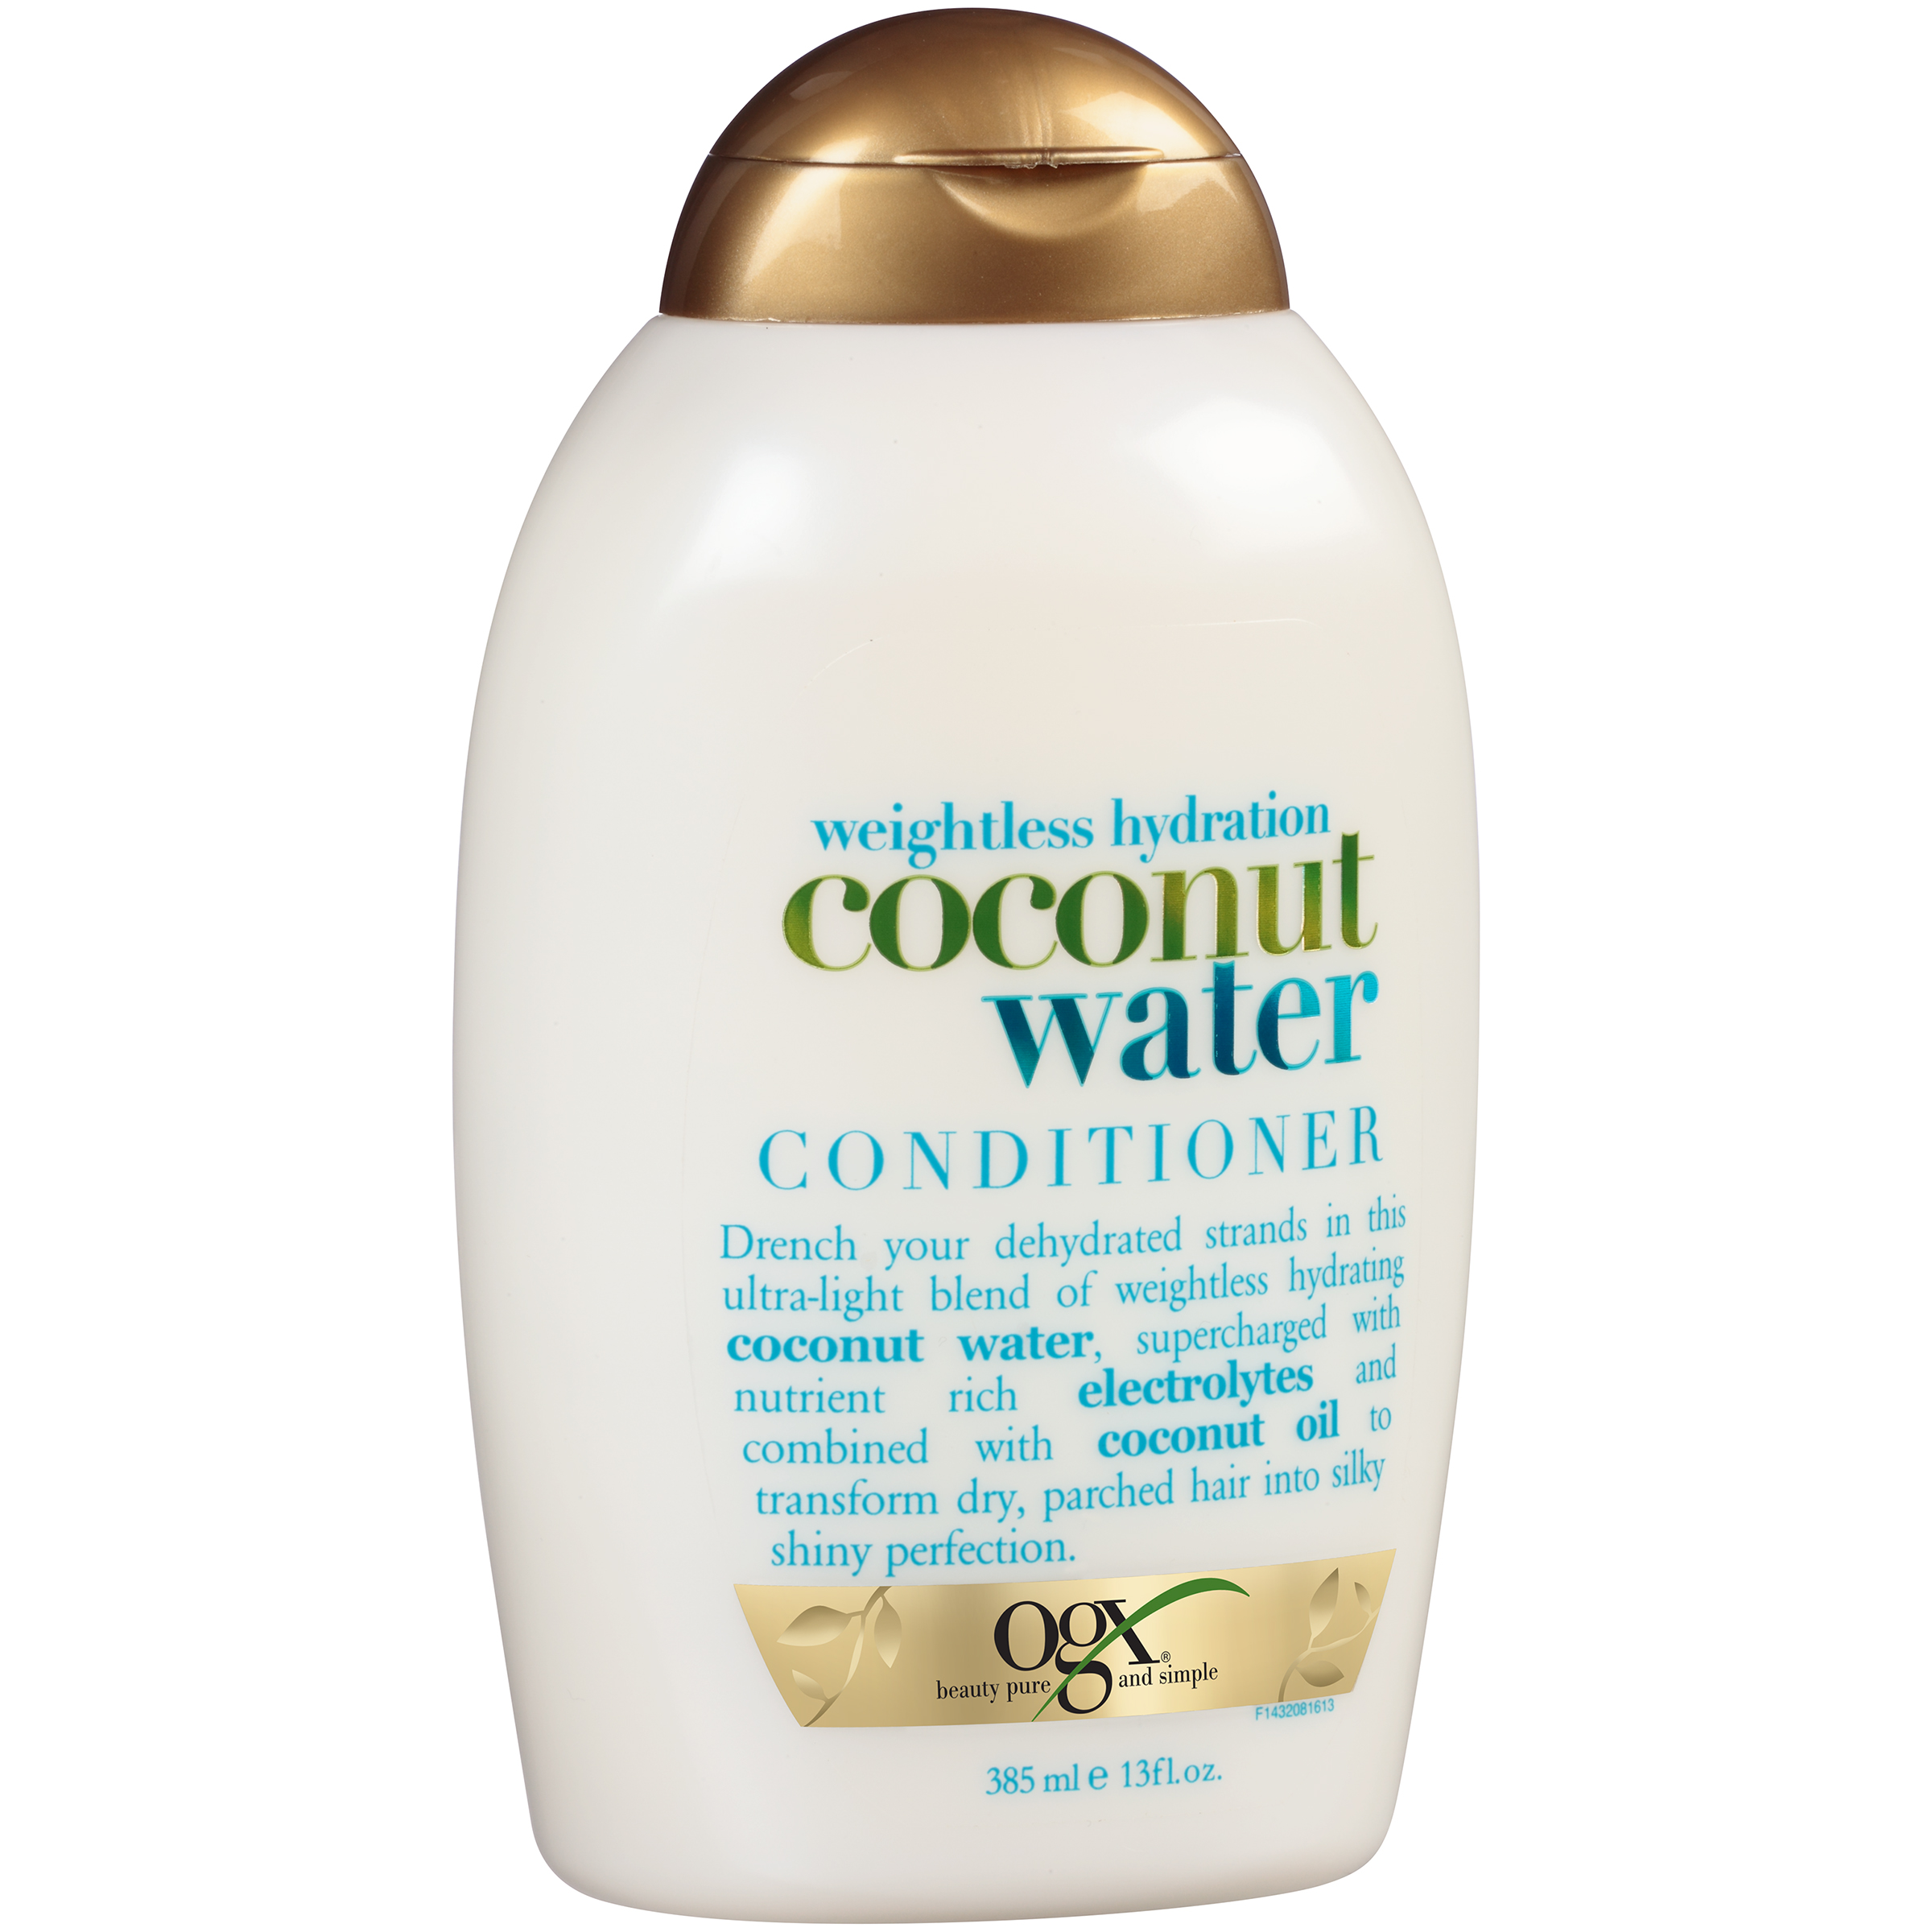 OGX® Weightless Hydration Coconut Water Conditioner 13 fl. oz. Bottle